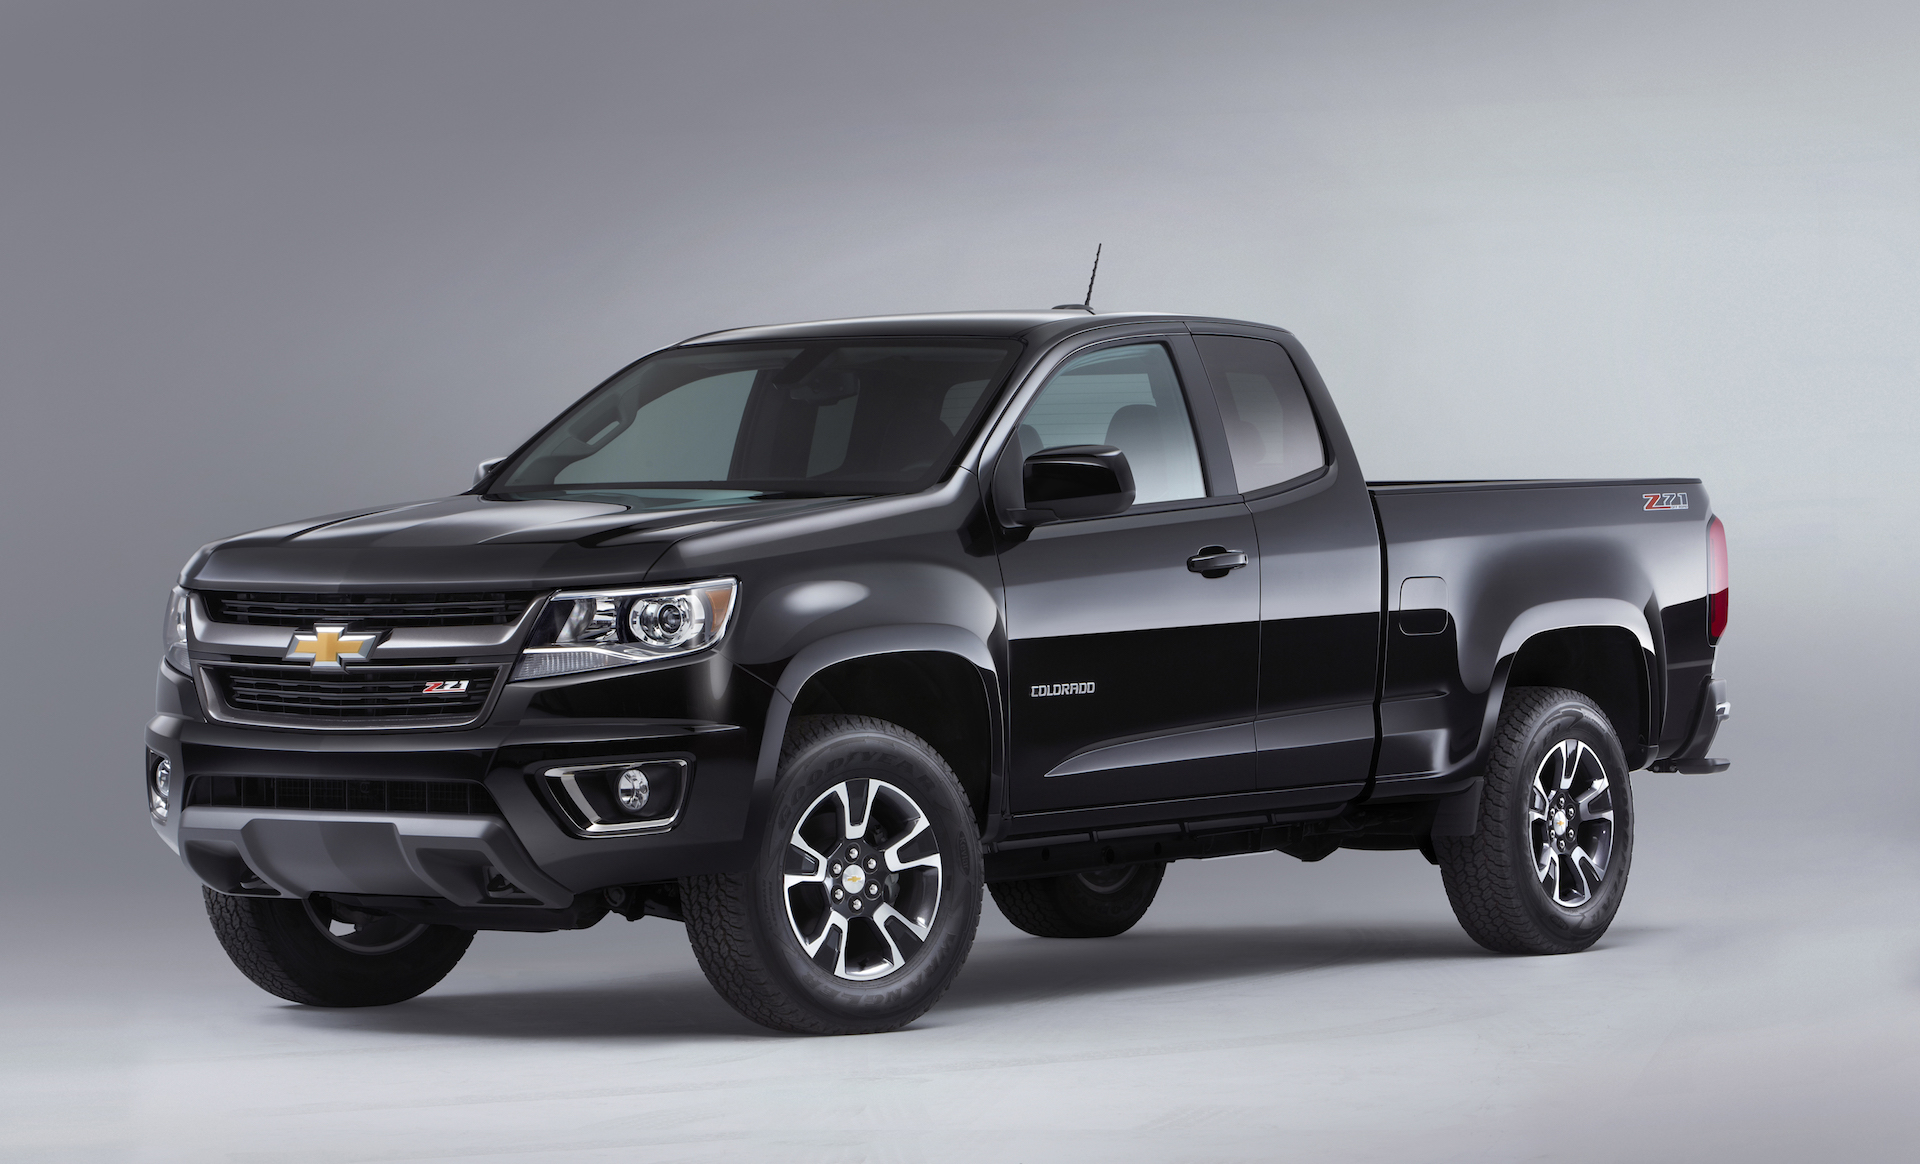 2017 Chevrolet Colorado vs 2017 Toyota Ta a pare Trucks